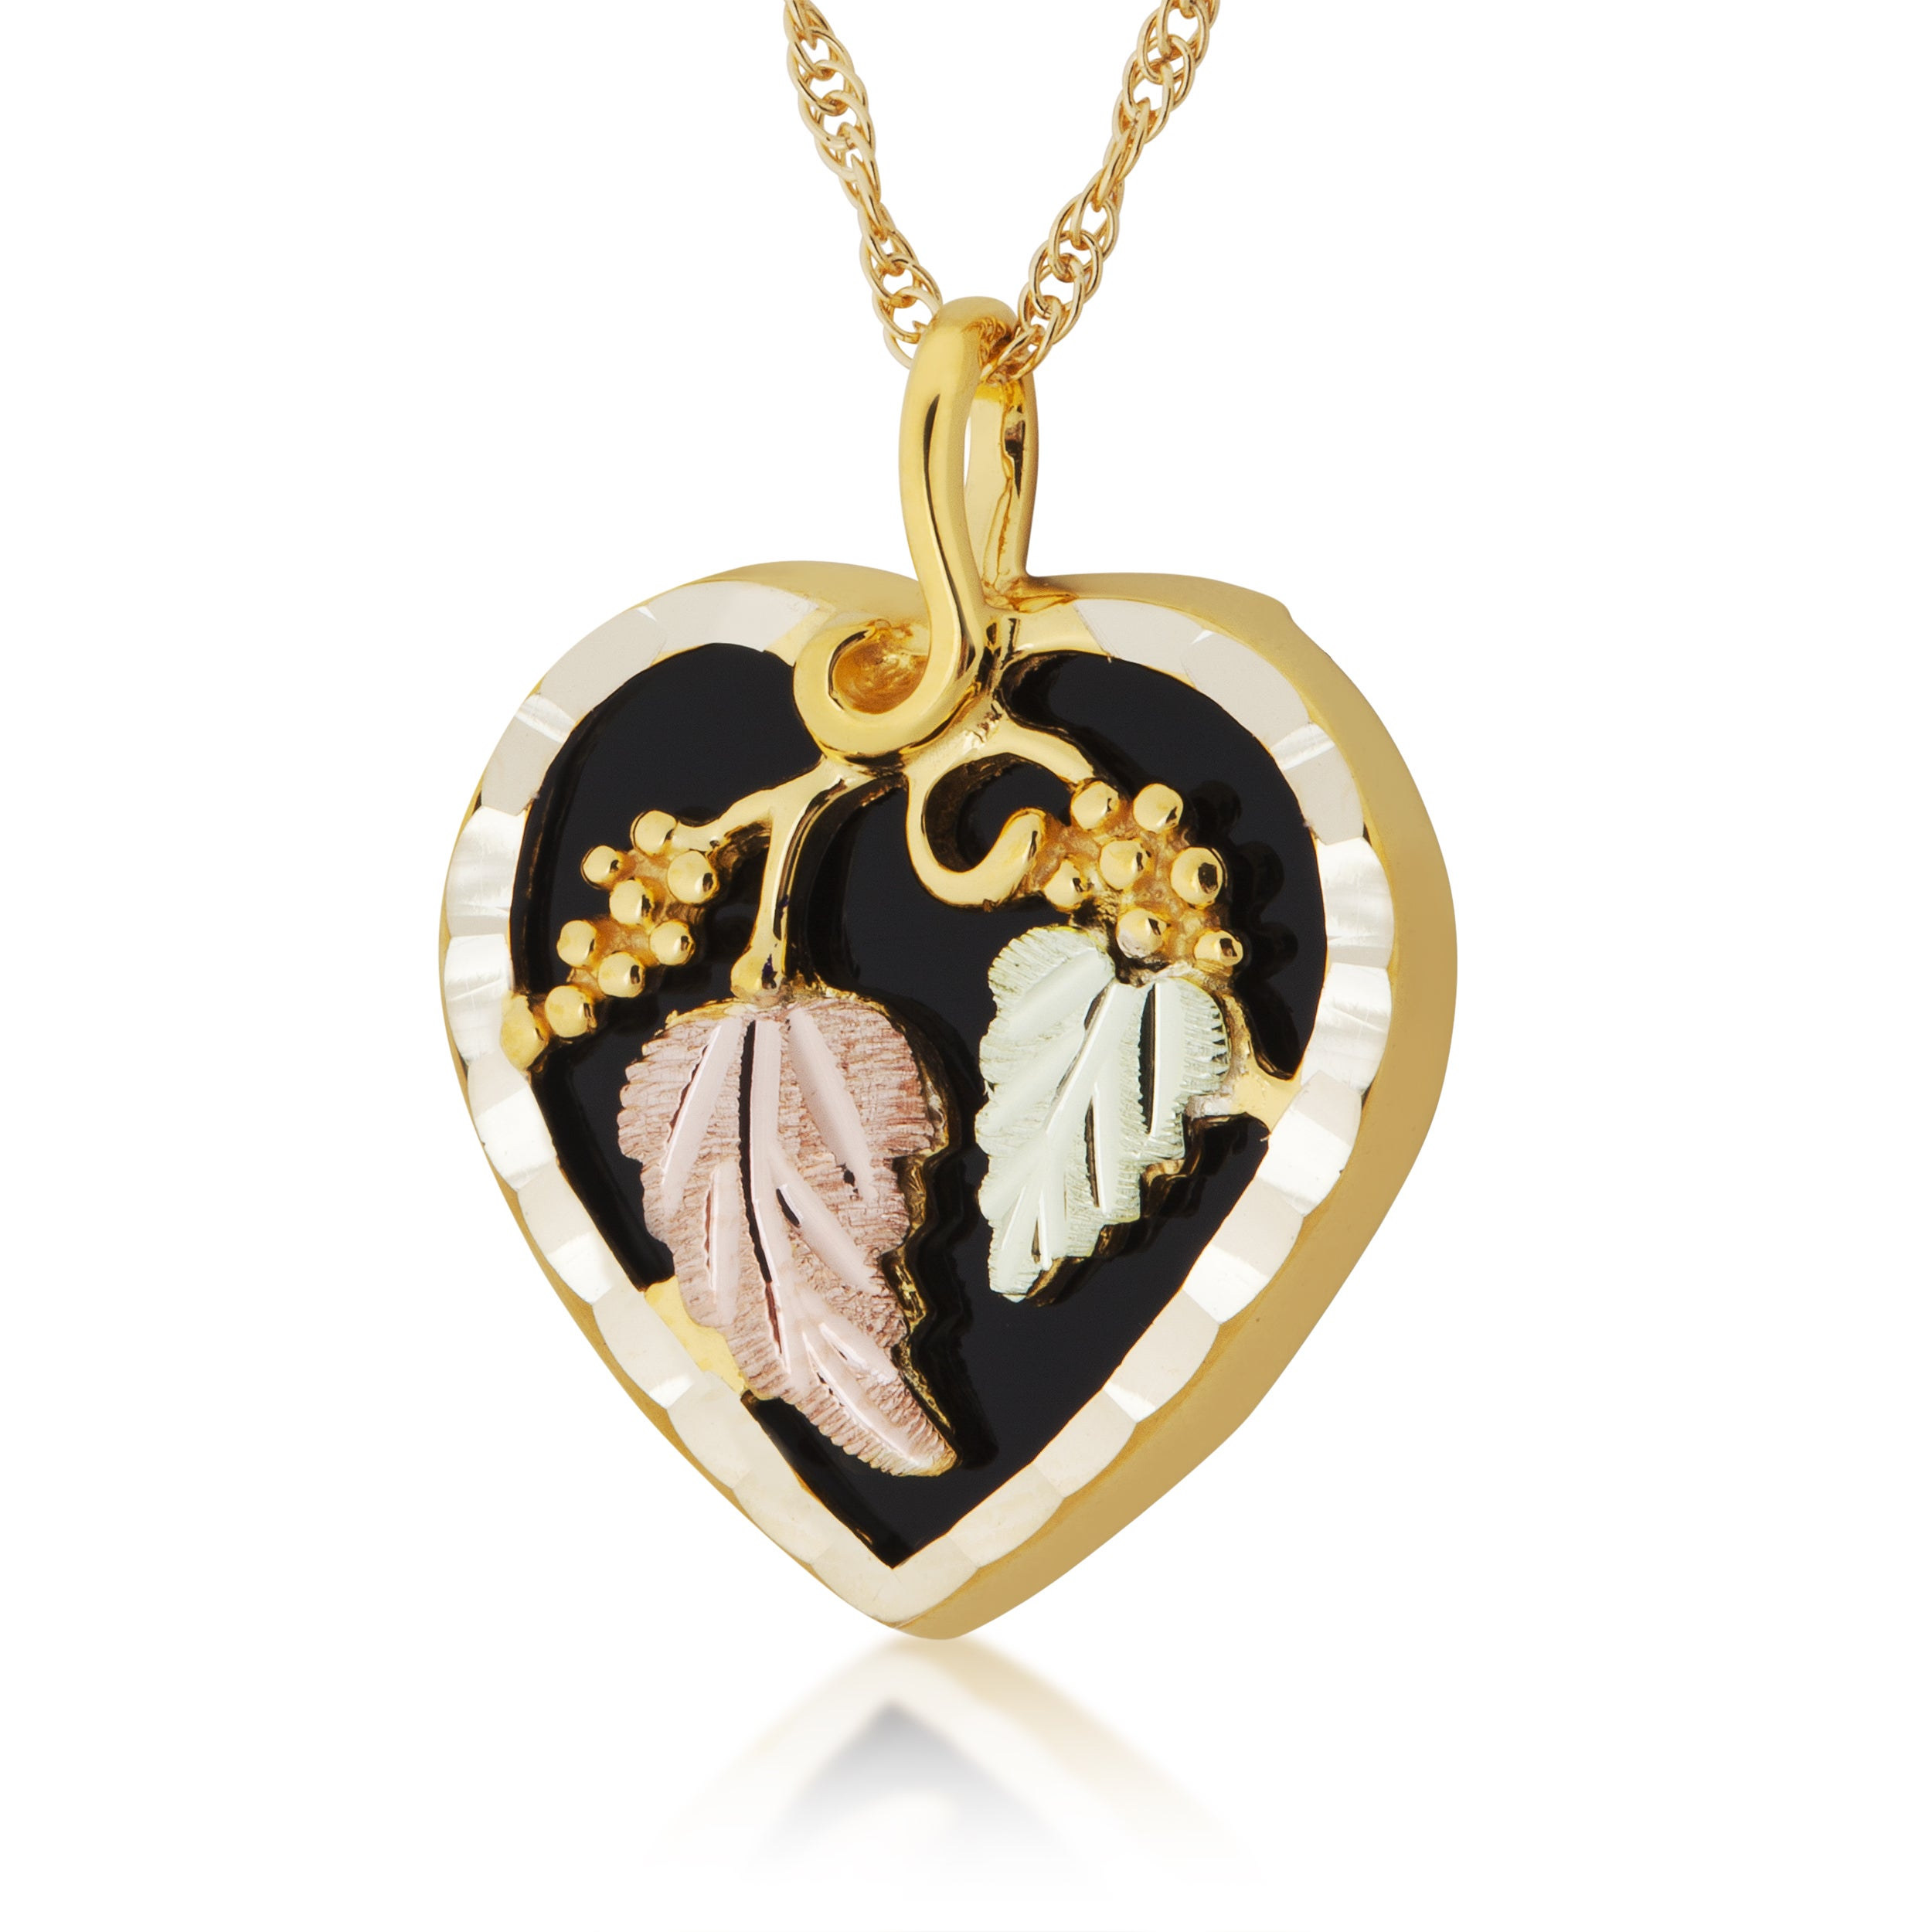 black il description necklace listing pendant chain fullxfull hills heart with gold prld